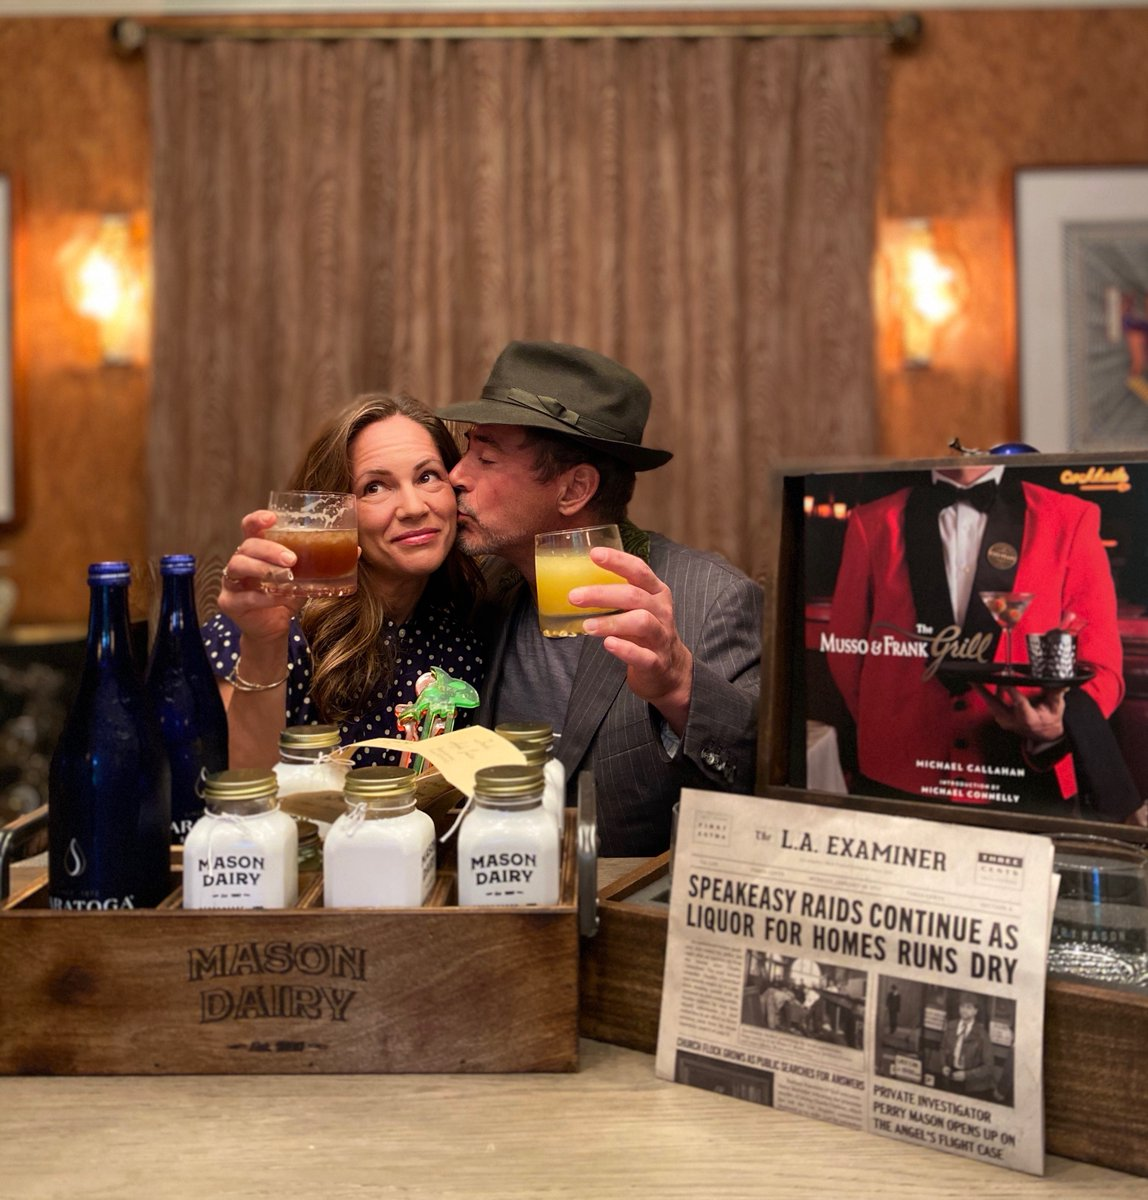 Tonight, court's in session. @PerryMasonHBO at 9 PM on @HBO. The missus and I are getting ready with a few bits and bobs from Perry's own Mason Farm. Celebrating local restaurants around since the time of the show. Tune in with us? #mocktails